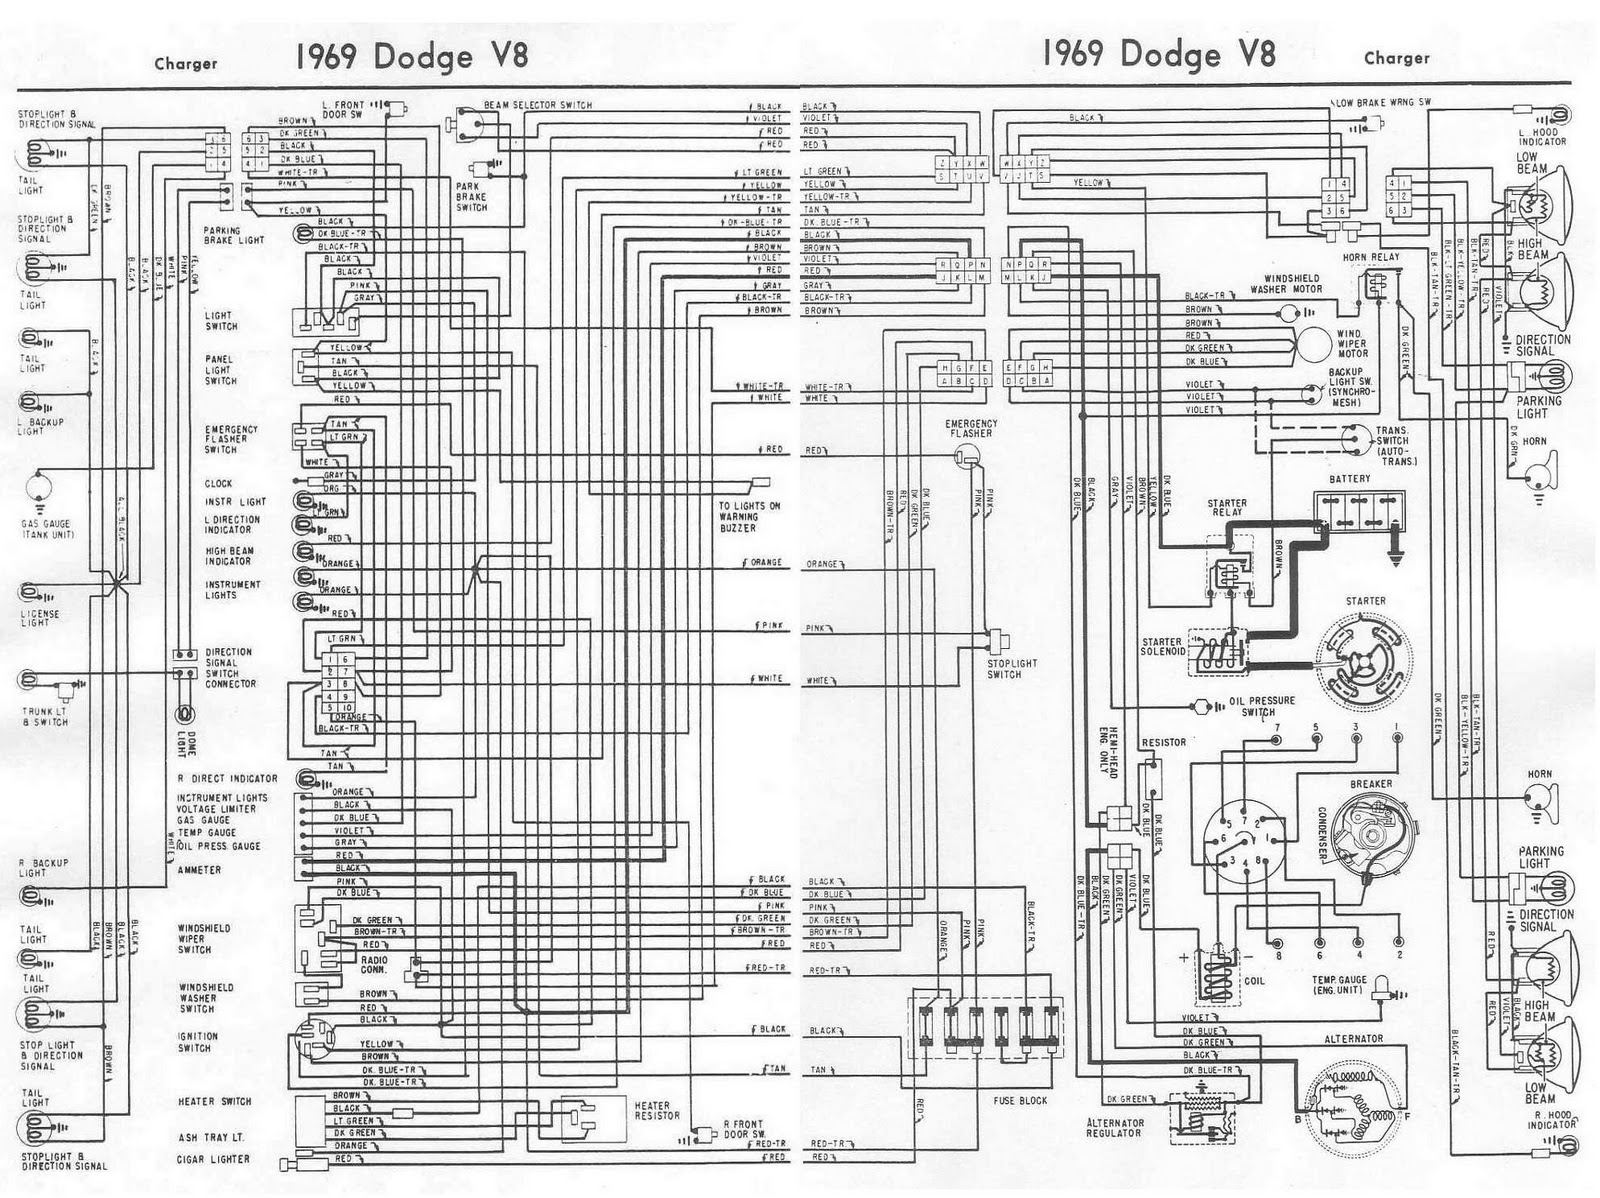 Lovely Electrical Wiring Terminology Images typical organizational ...